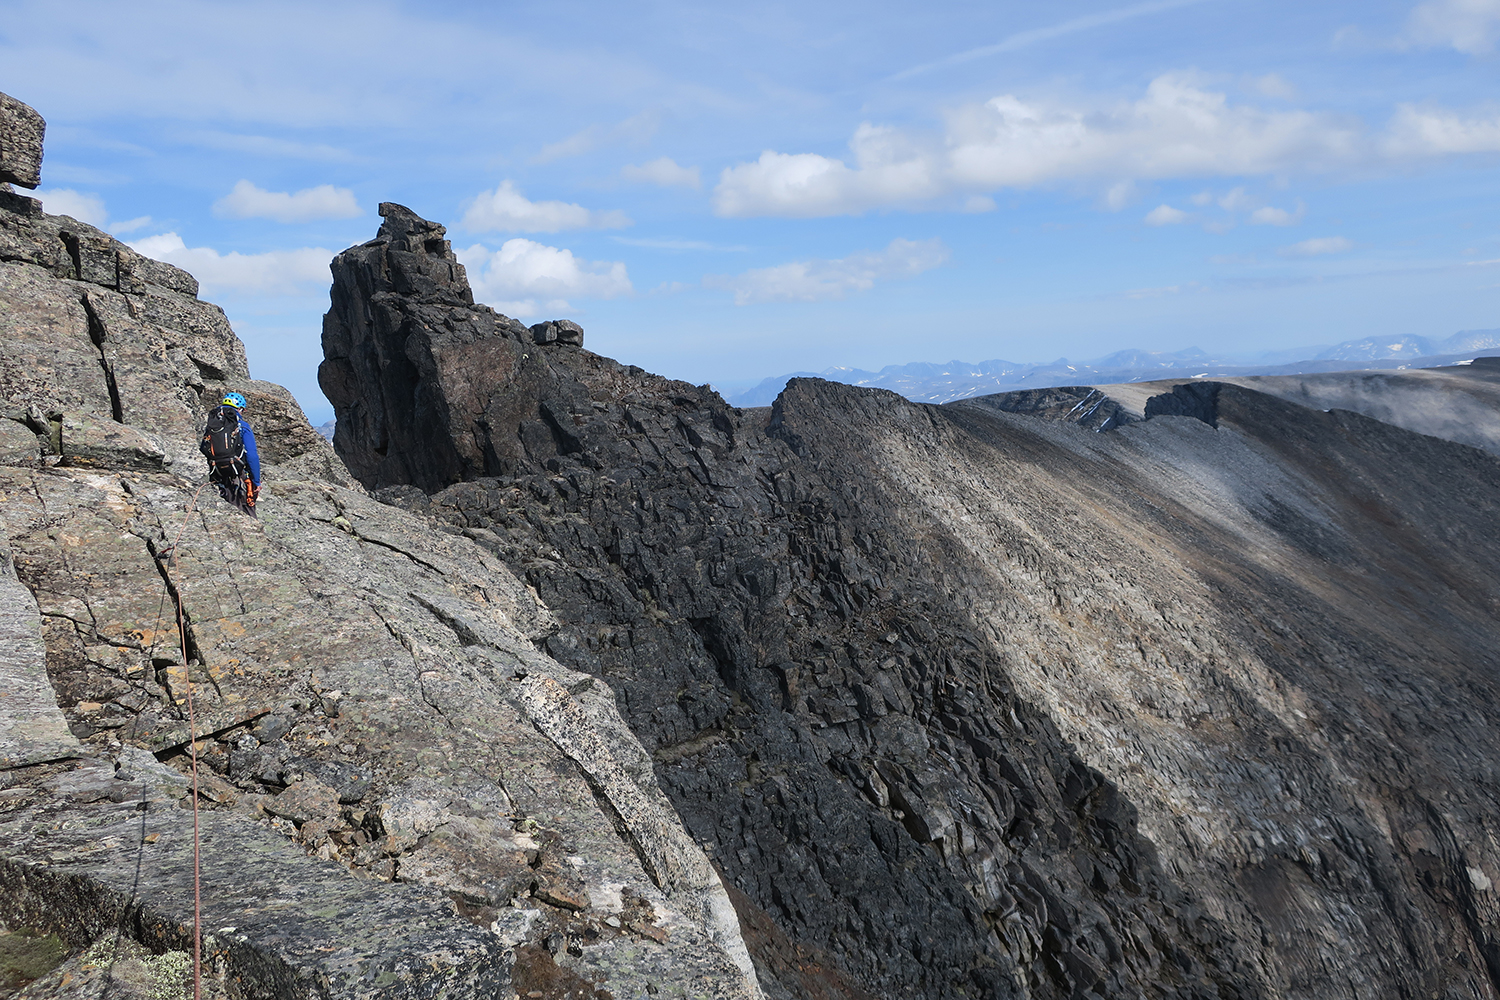 Mike and route finding on the return with the summit now behind us.Photo: Paul Denys